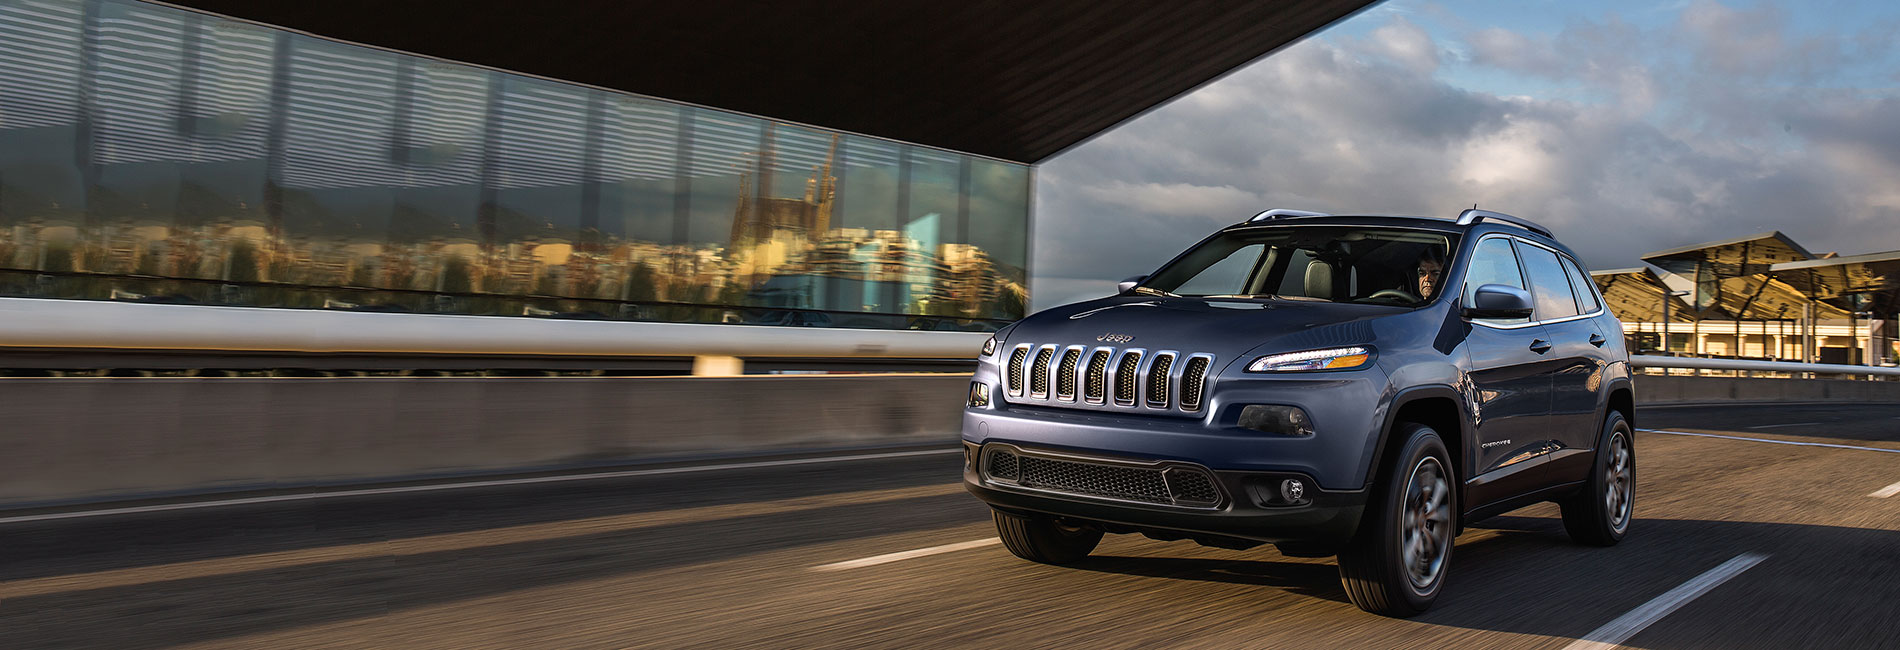 Jeep Cherokee Exterior Vehicle Features